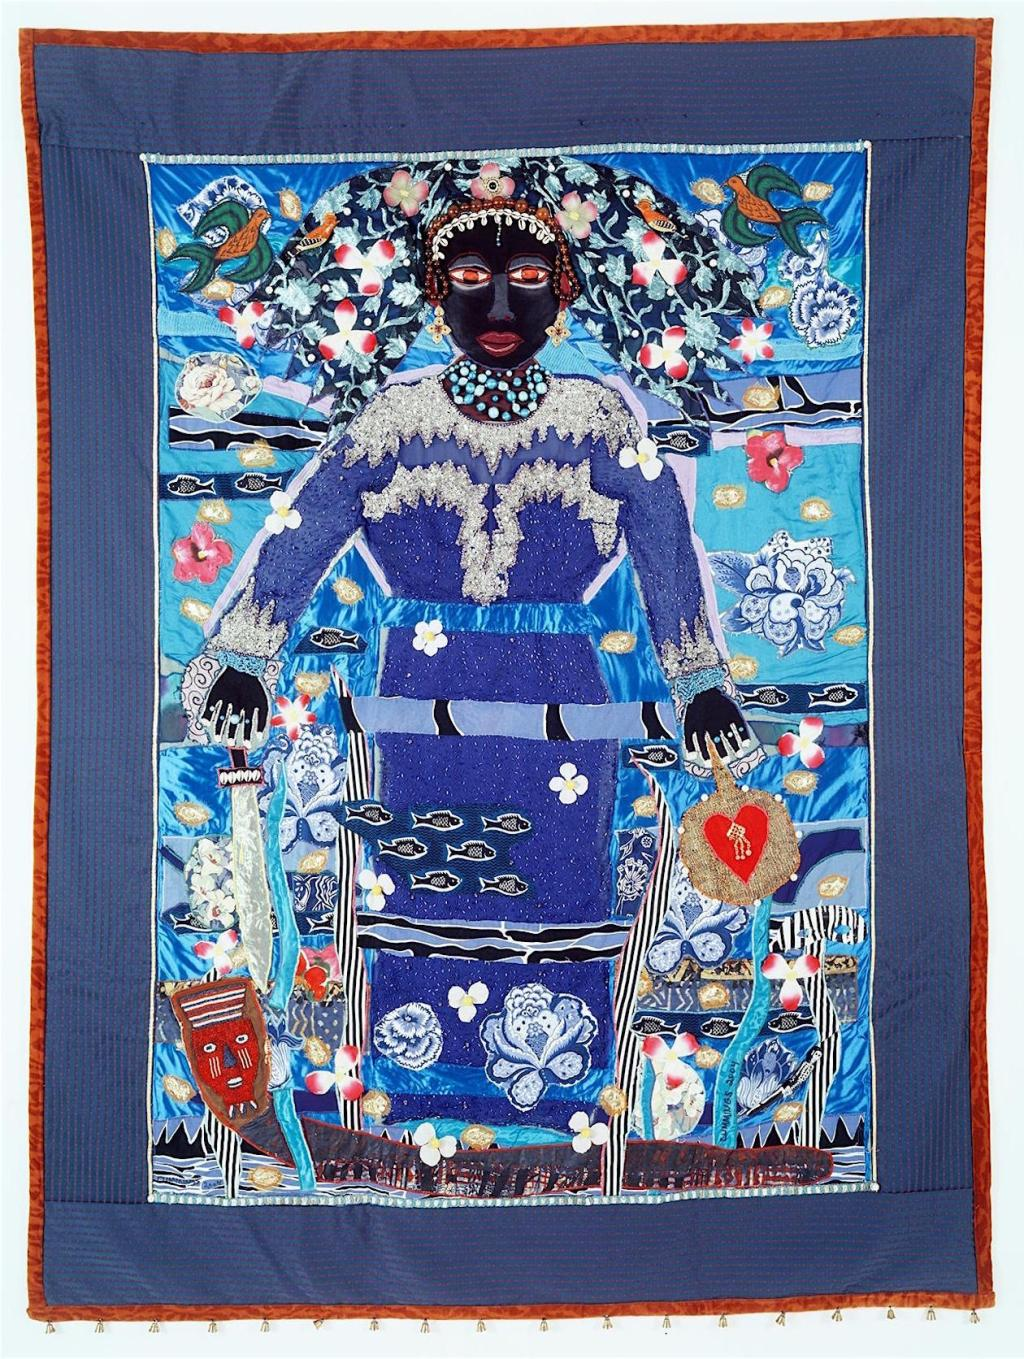 Michael A. Cummings, Brazilian Love Goddess Yemaya, 2004, Quilts episode, Craft in America